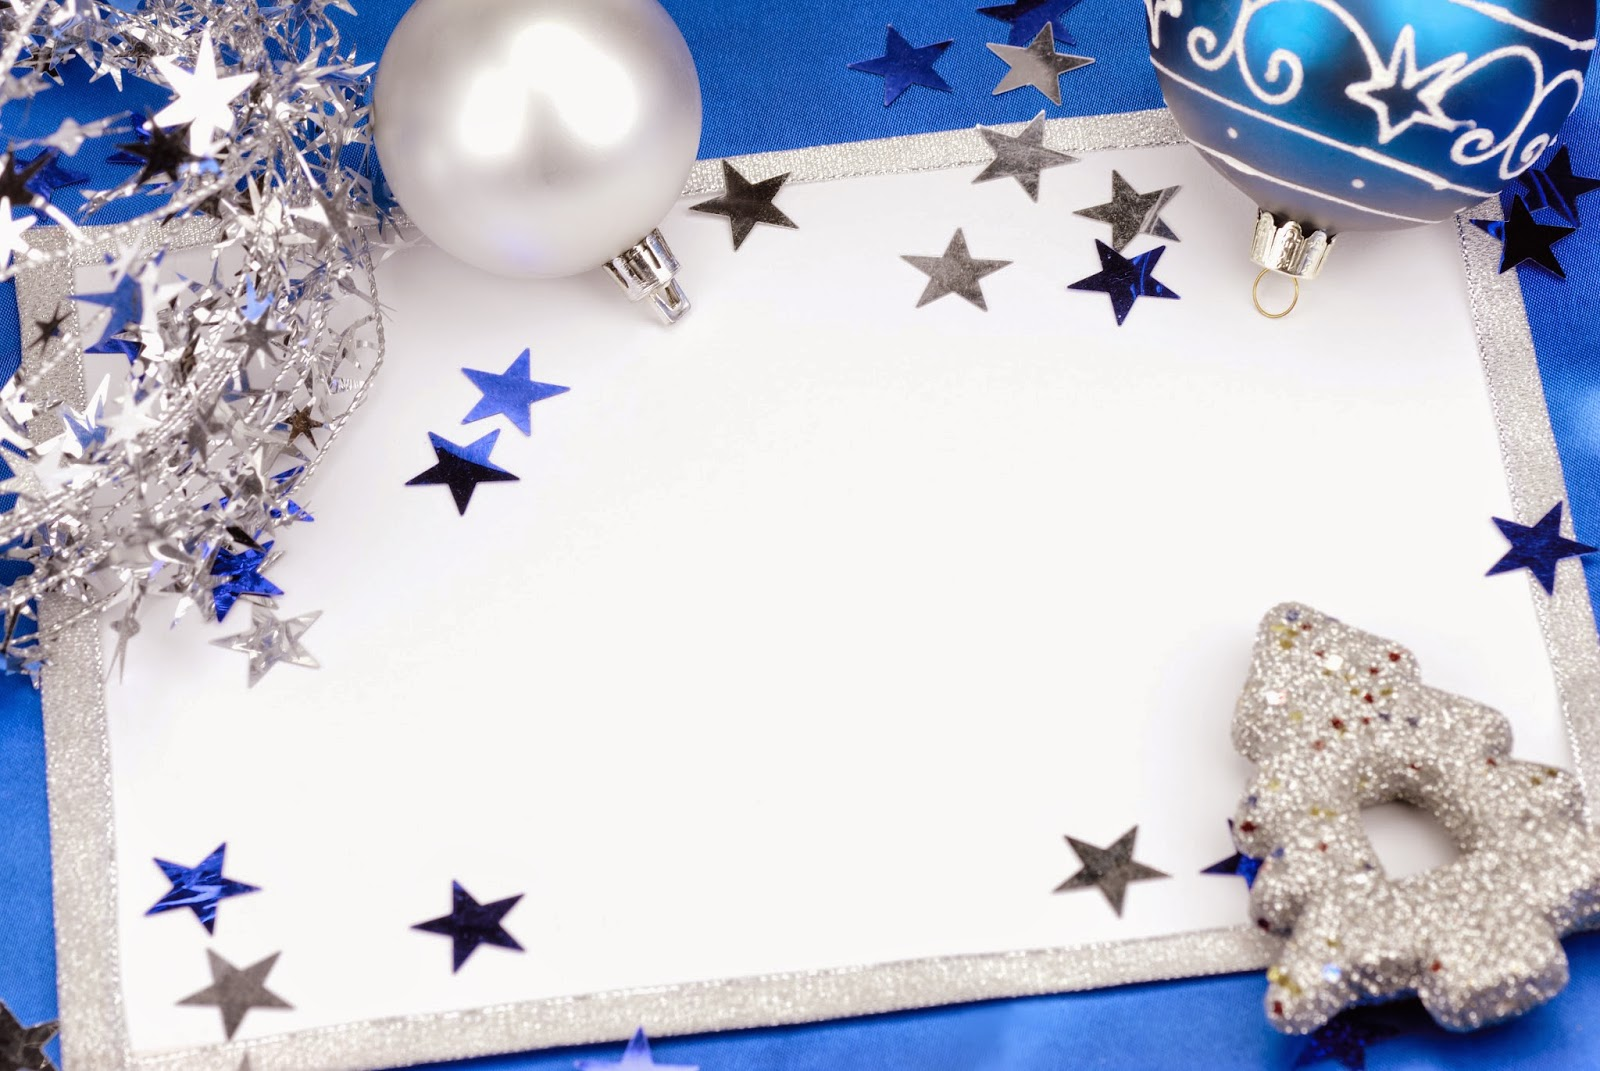 Blue-silver-stars-white-text-edit-area-theme-template-HD-card-Christmas-free-download-3872x2592.jpg